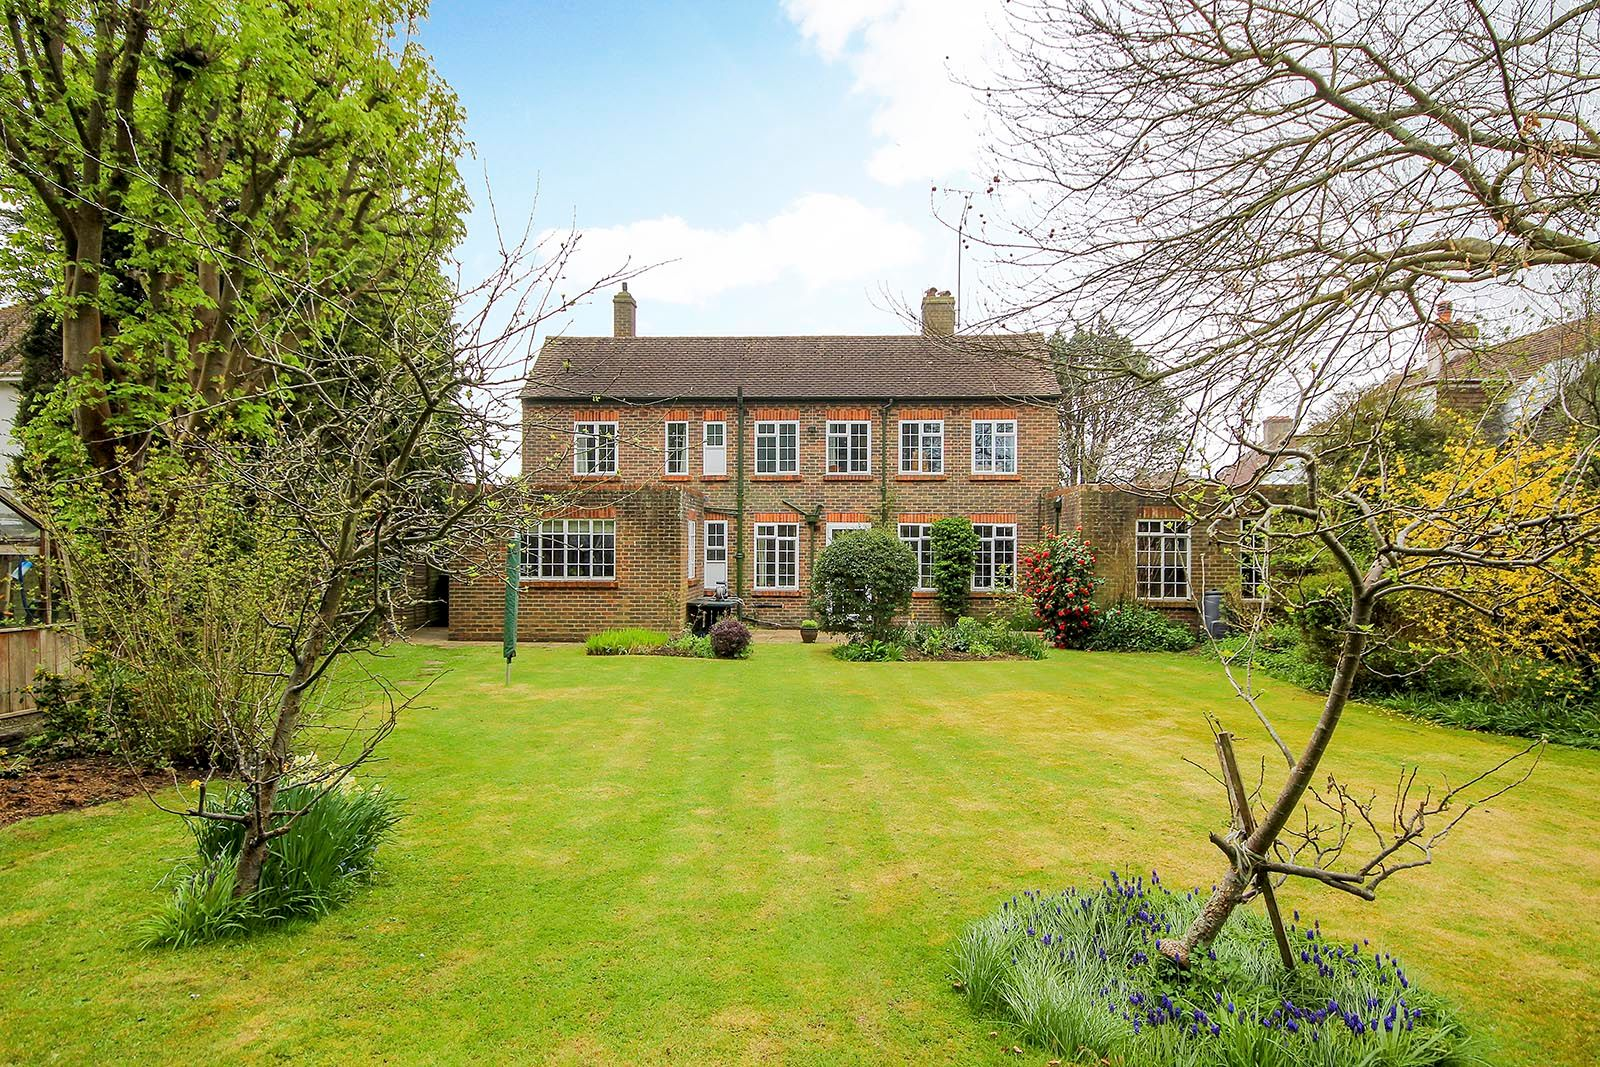 4 bed house for sale in Mill Road (COMP AUG 19) 8